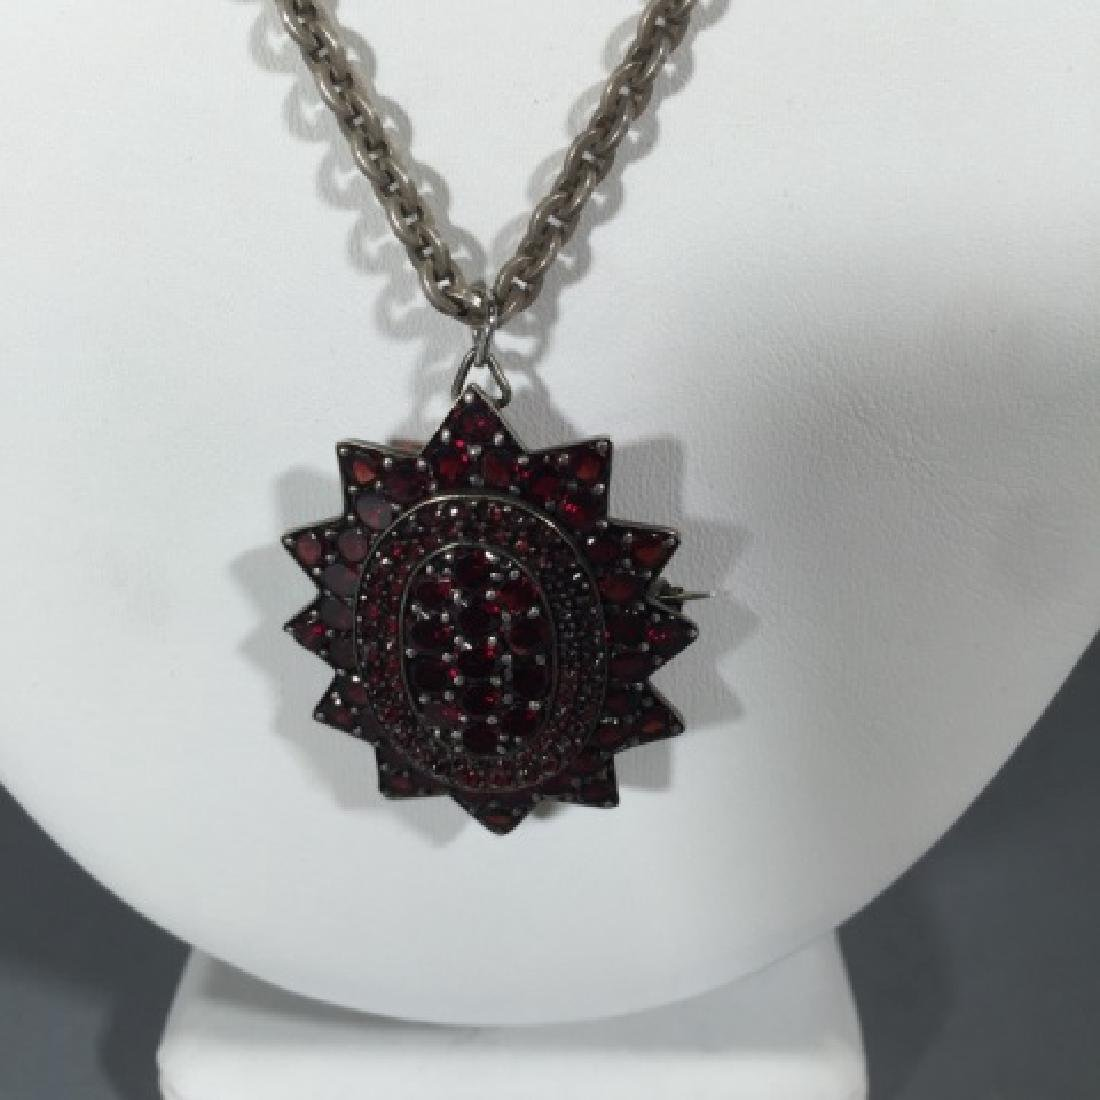 Large Antique 19th C Garnet Star Necklace Pendant